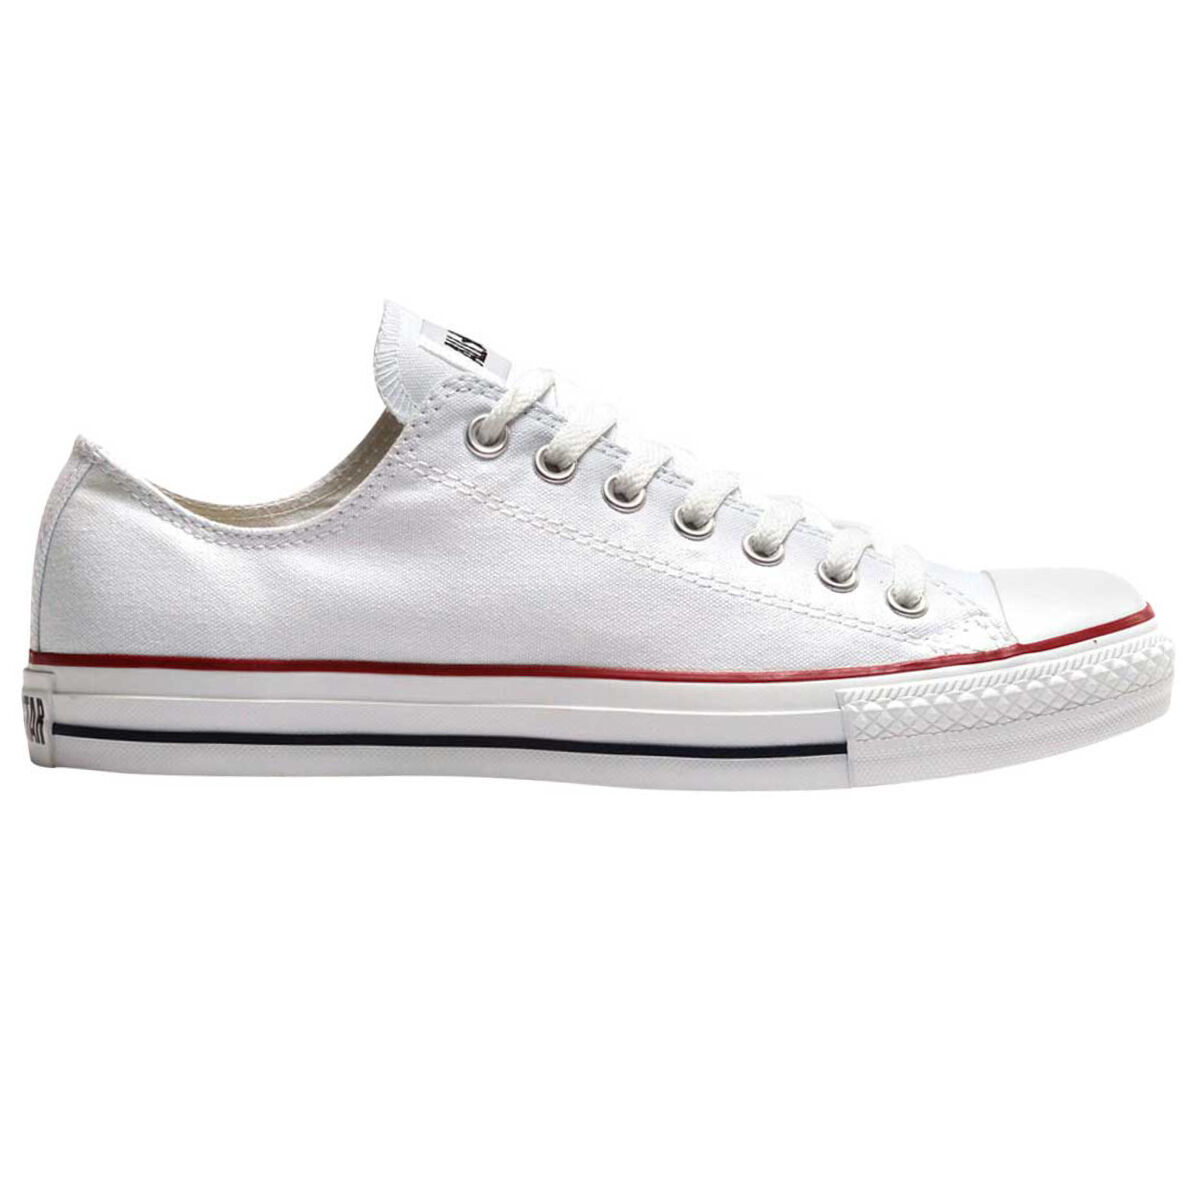 Converse Chuck Taylor All Star Low Casual Shoes White US Mens 3 Womens 5